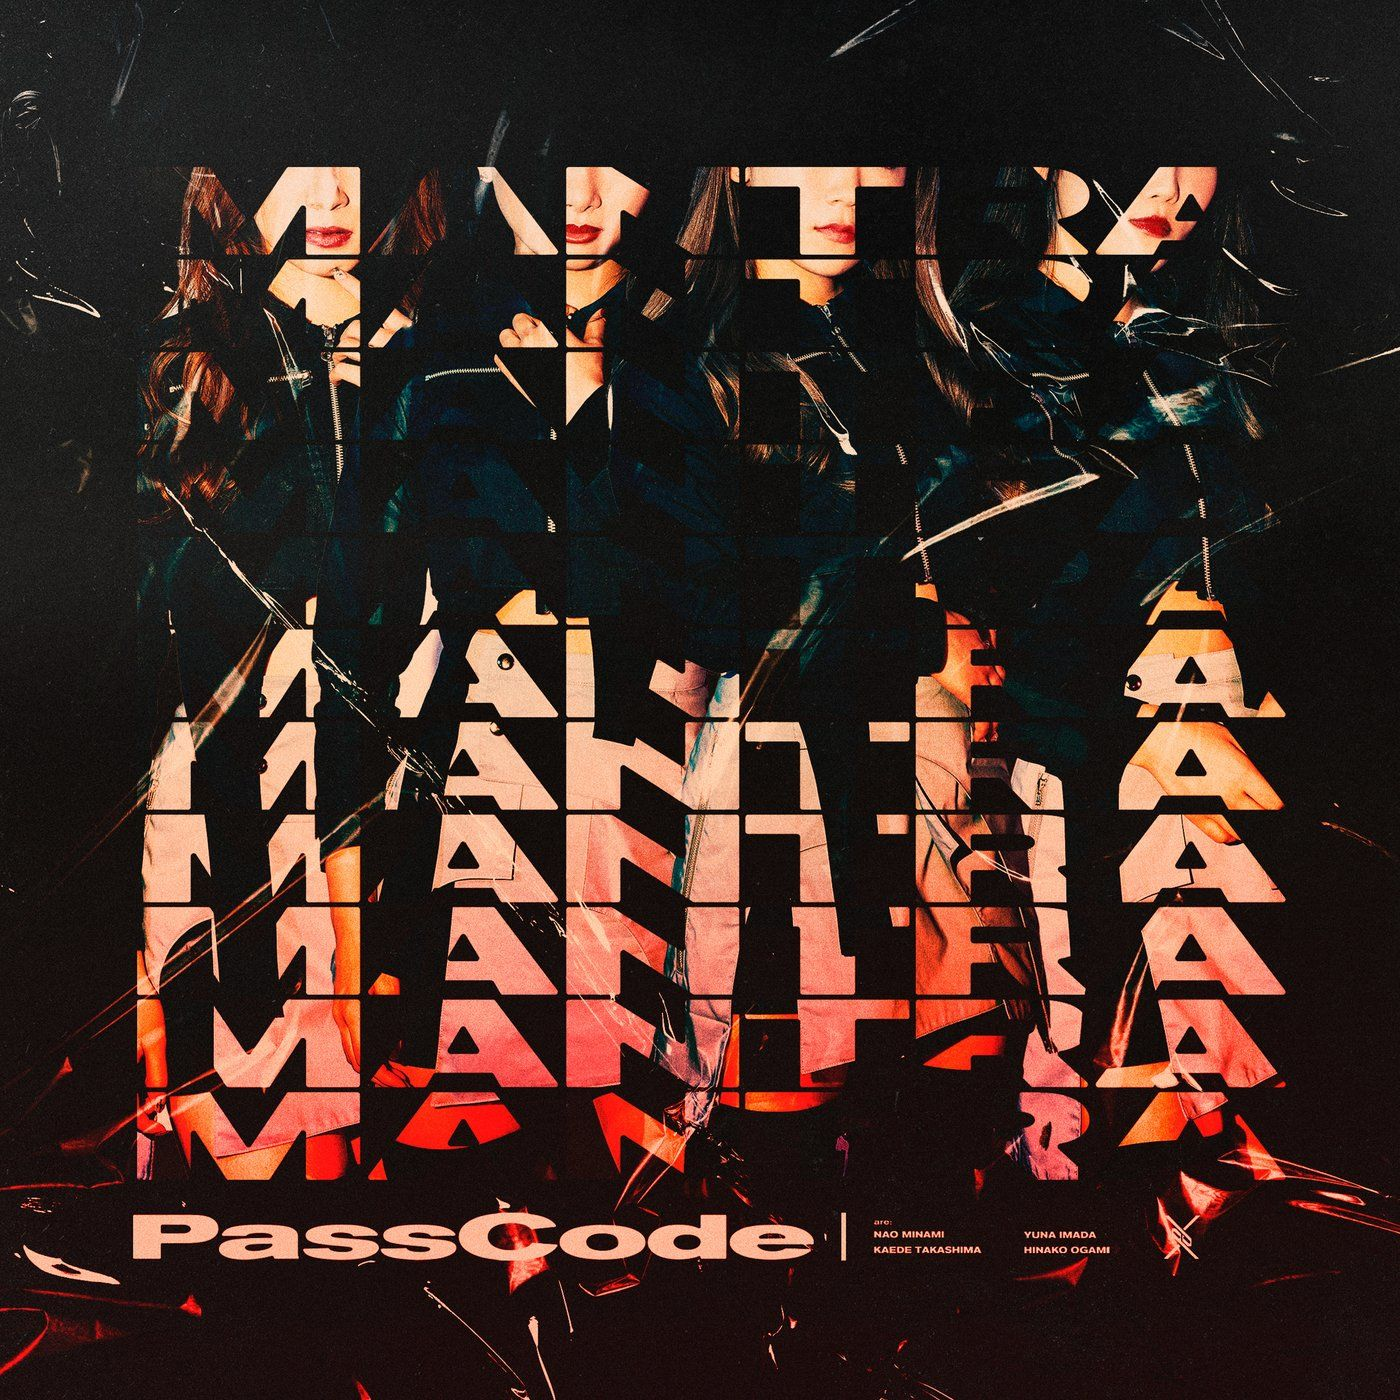 PassCode - Mantra (Bring Me The Horizon cover) [single] (2020)